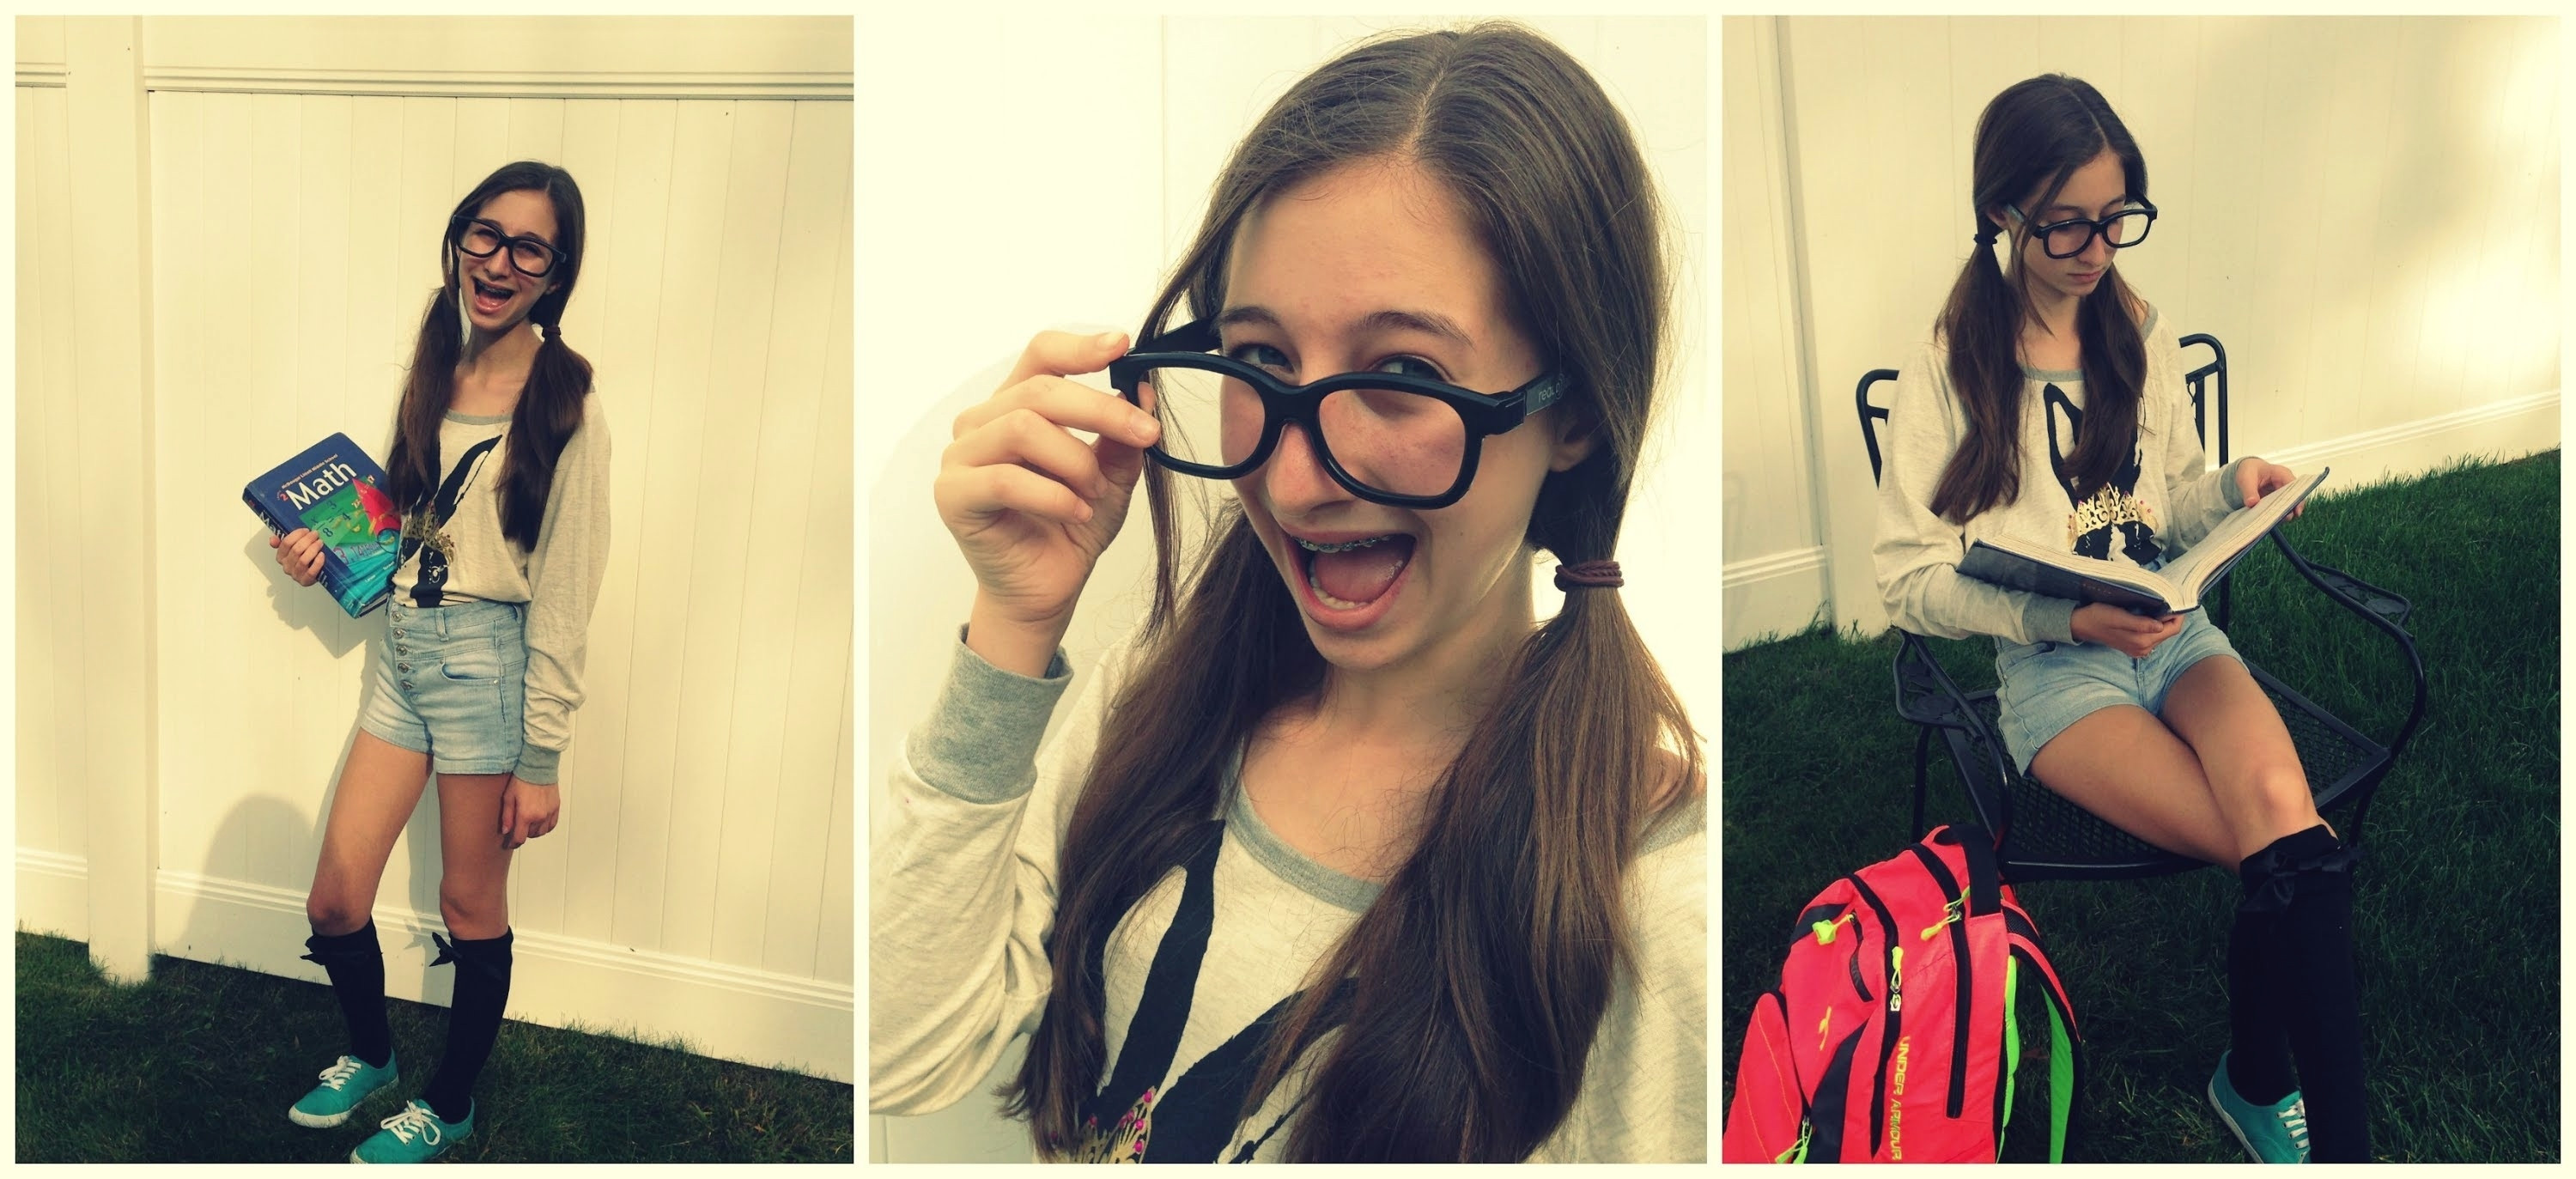 Best ideas about Nerd Hairstyle For Girls . Save or Pin Nerd Hairstyles For Girls Now.